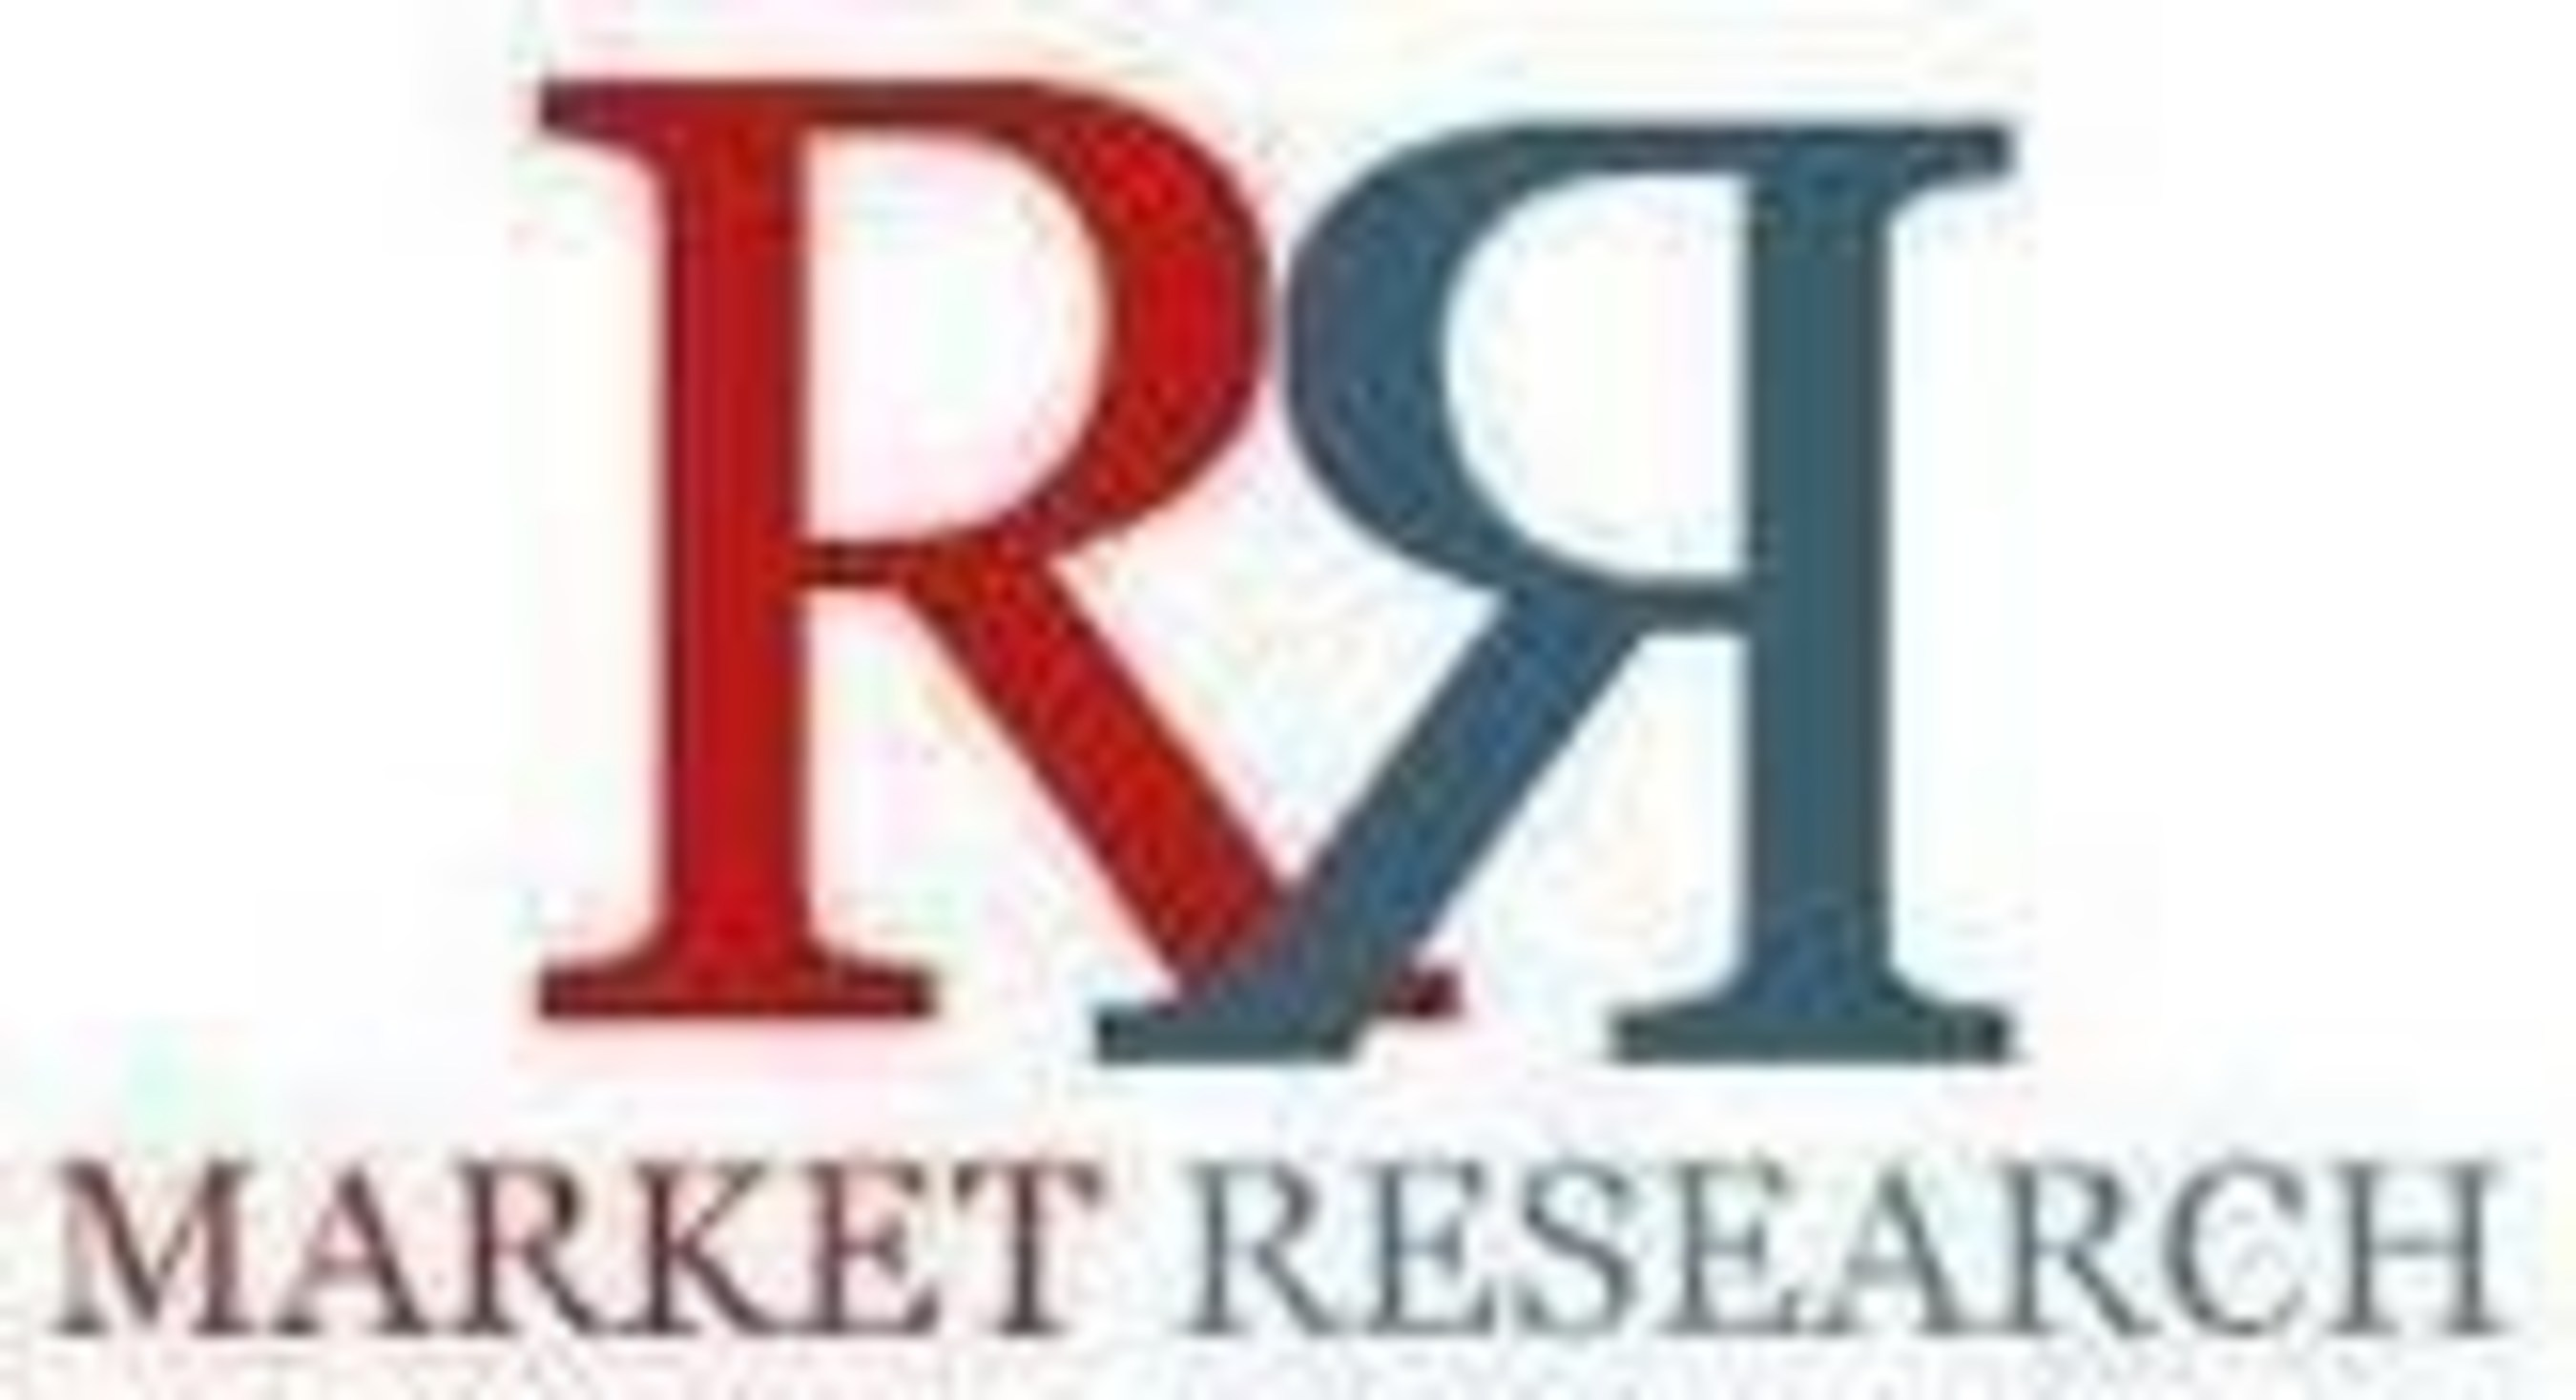 Virtual Reality Market Rising at 57.8% CAGR and $33.90 Billion by 2022 Led by Head-Mounted Display Segment